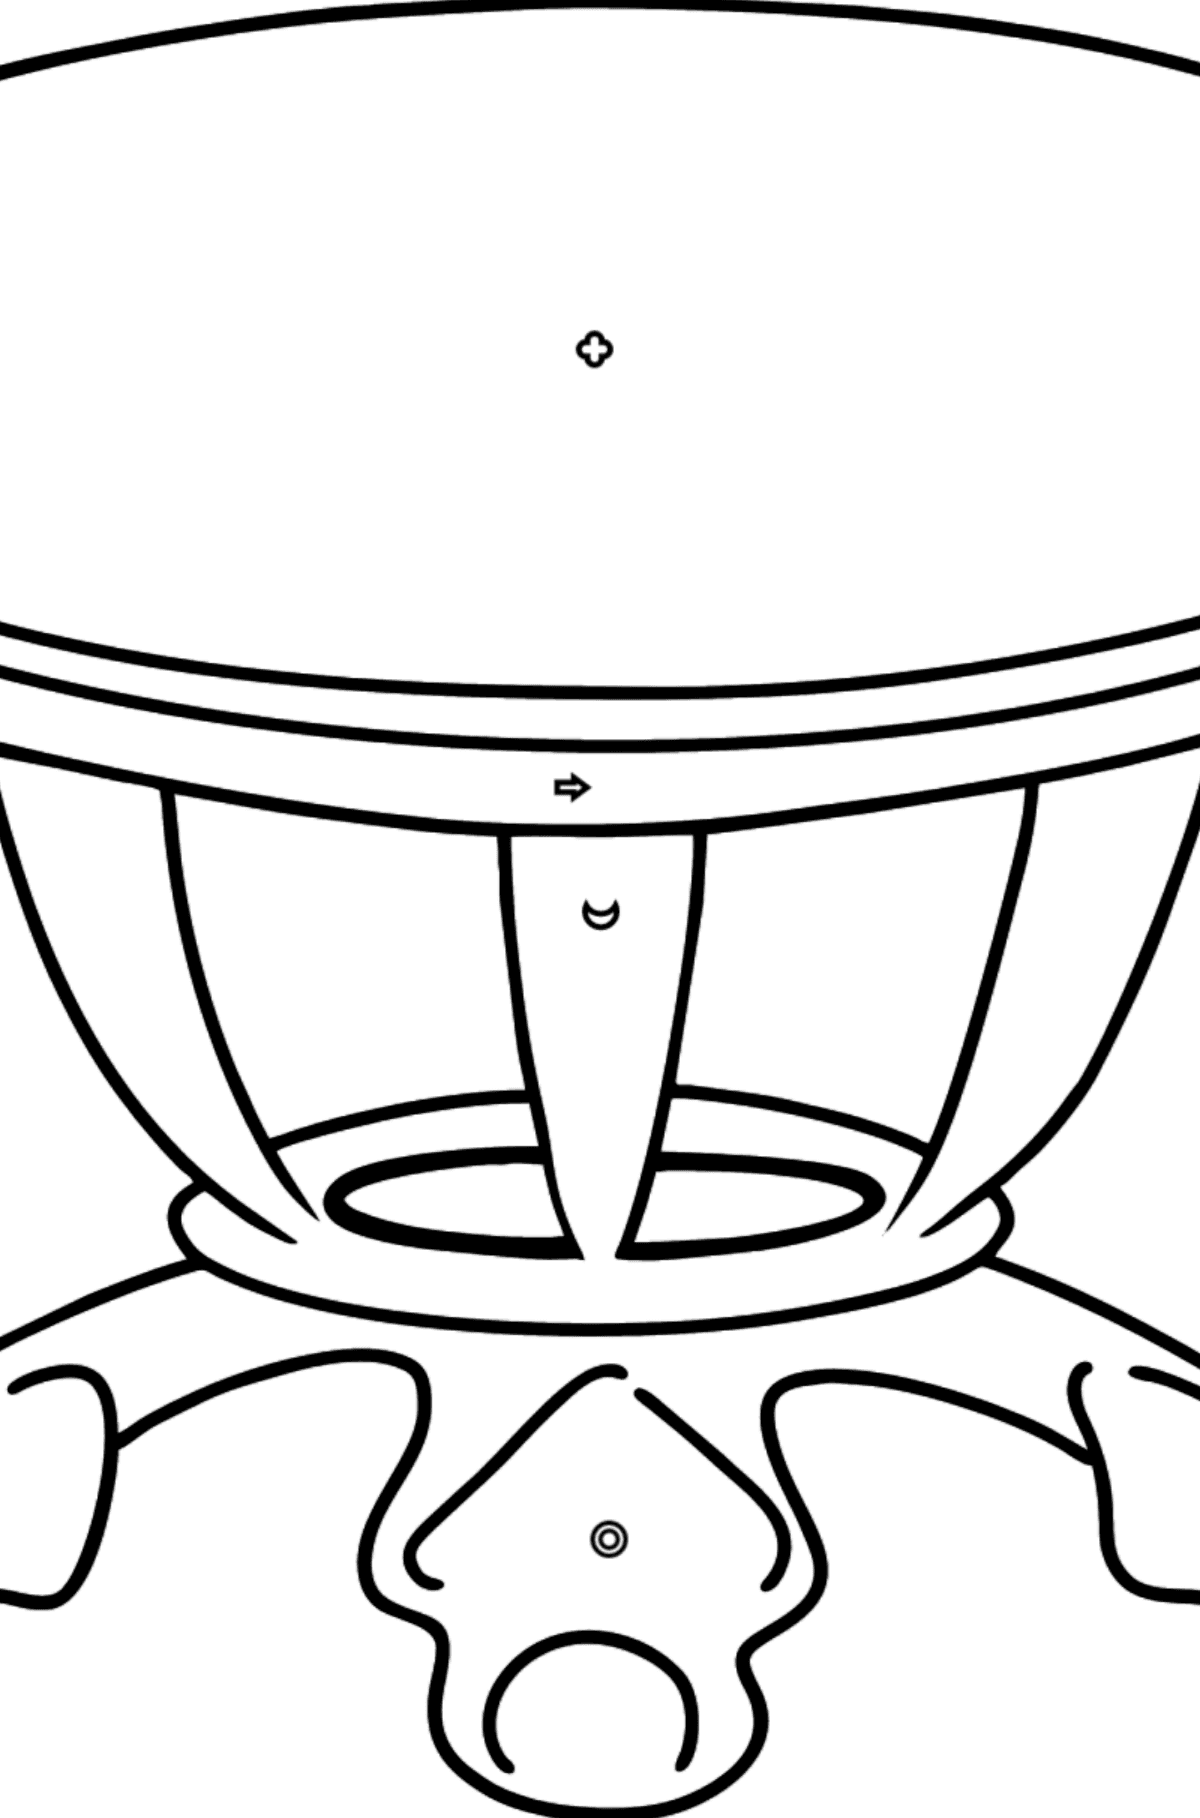 Dining Table coloring page - Coloring by Geometric Shapes for Kids